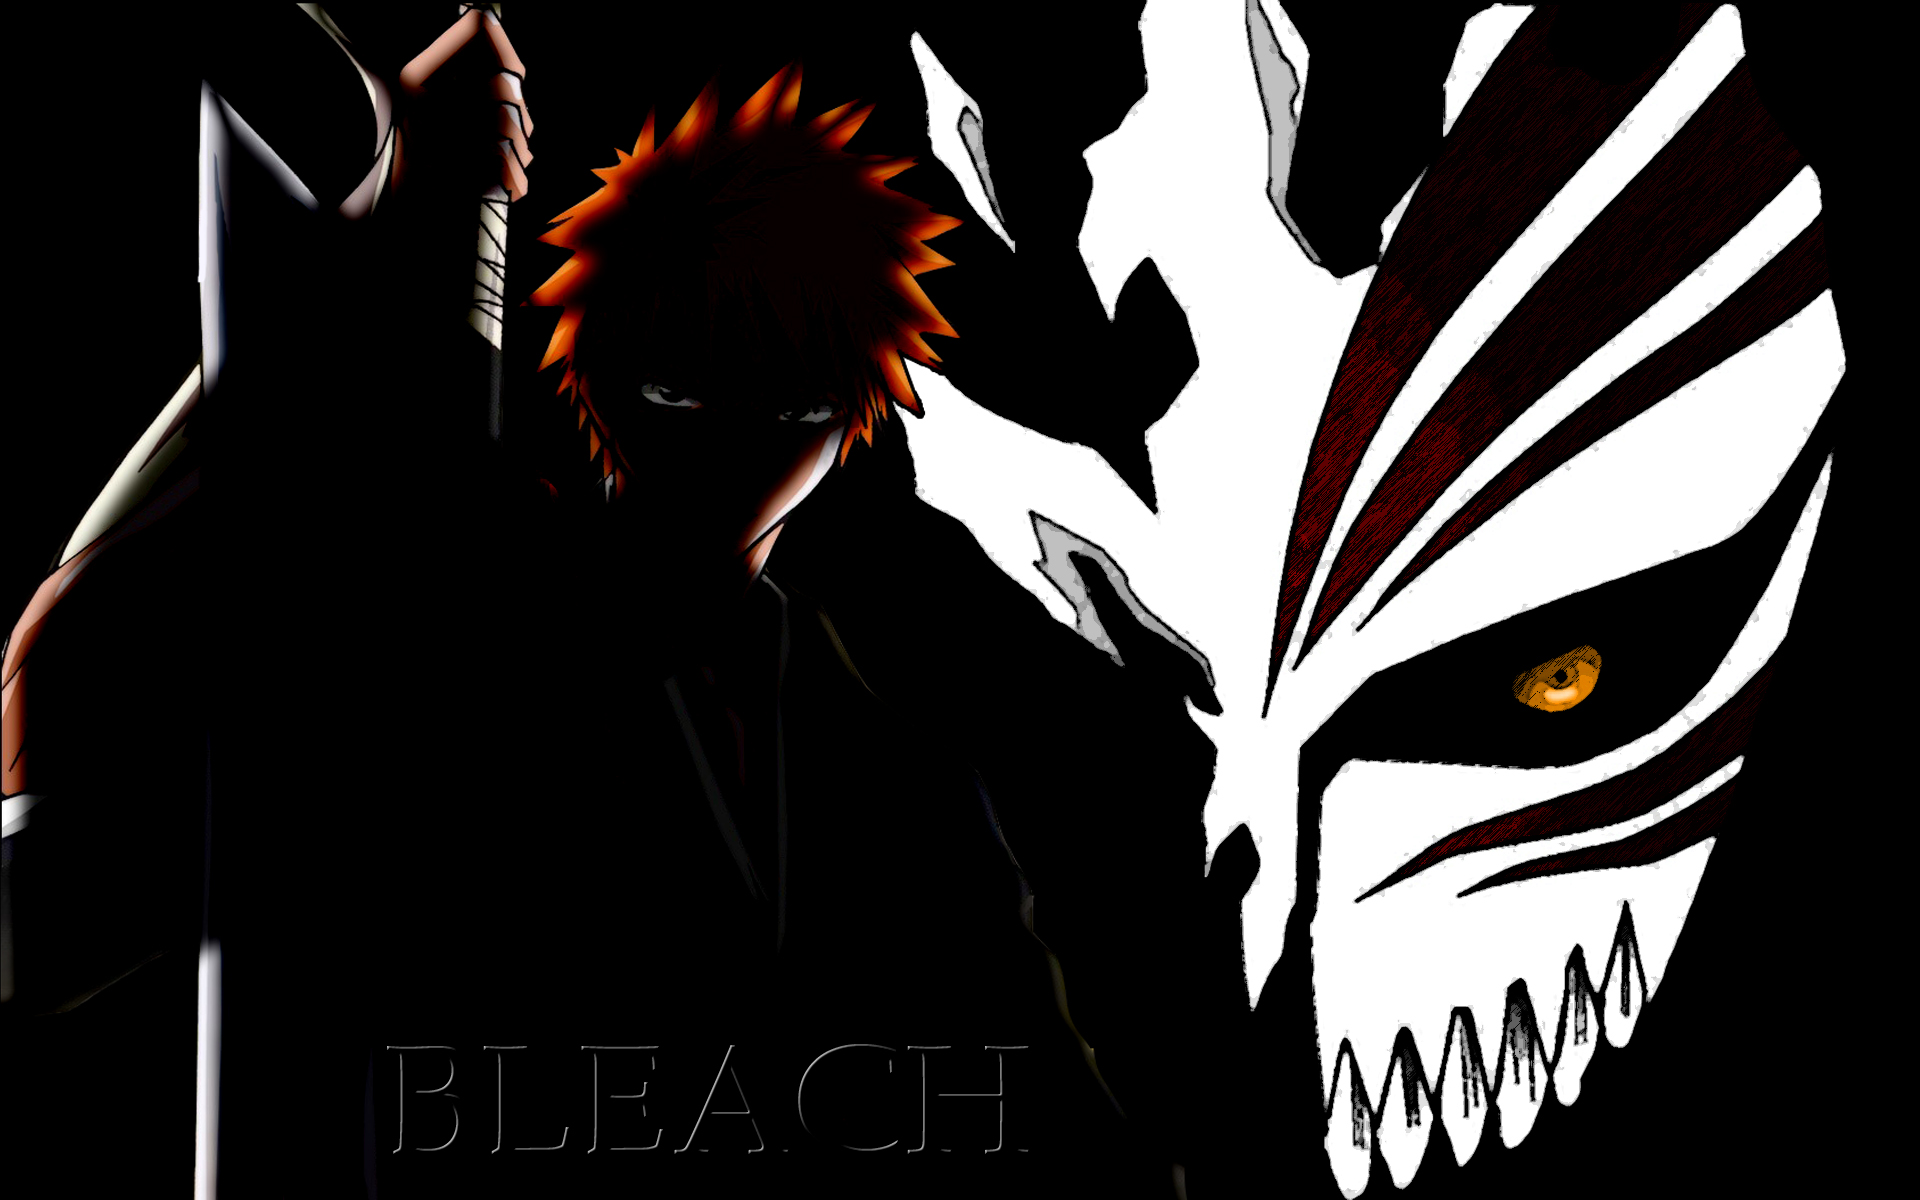 Bleach-Hd-Widescreen-Cool-Anime-wallpaper-wpc9002988